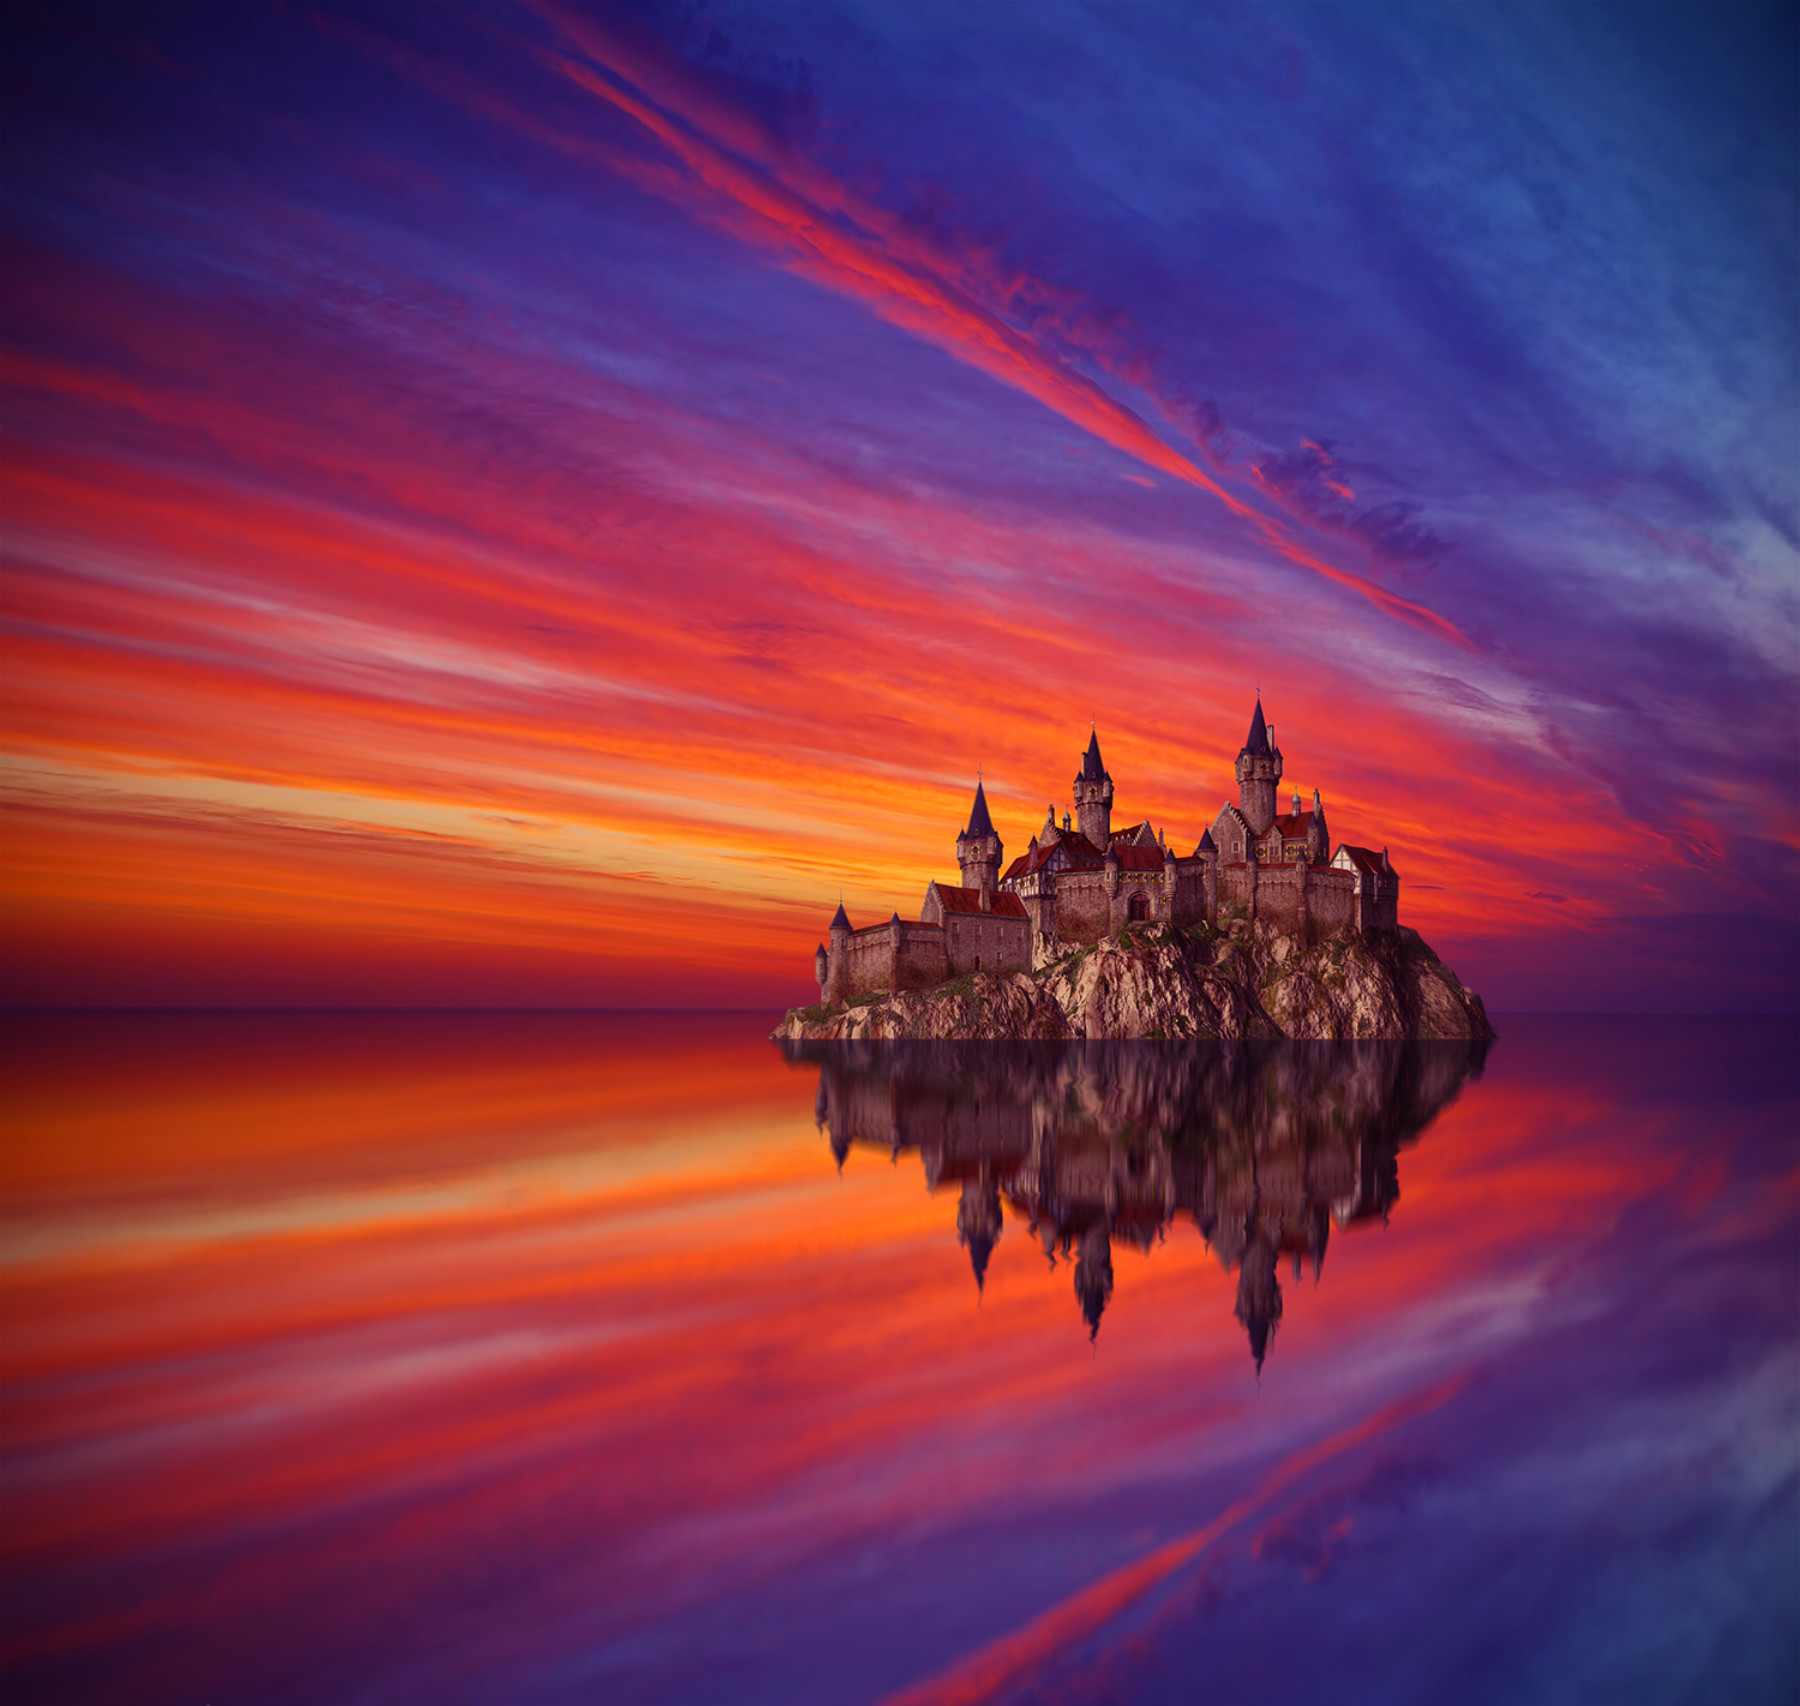 Fantasy Castle Floating on Waves